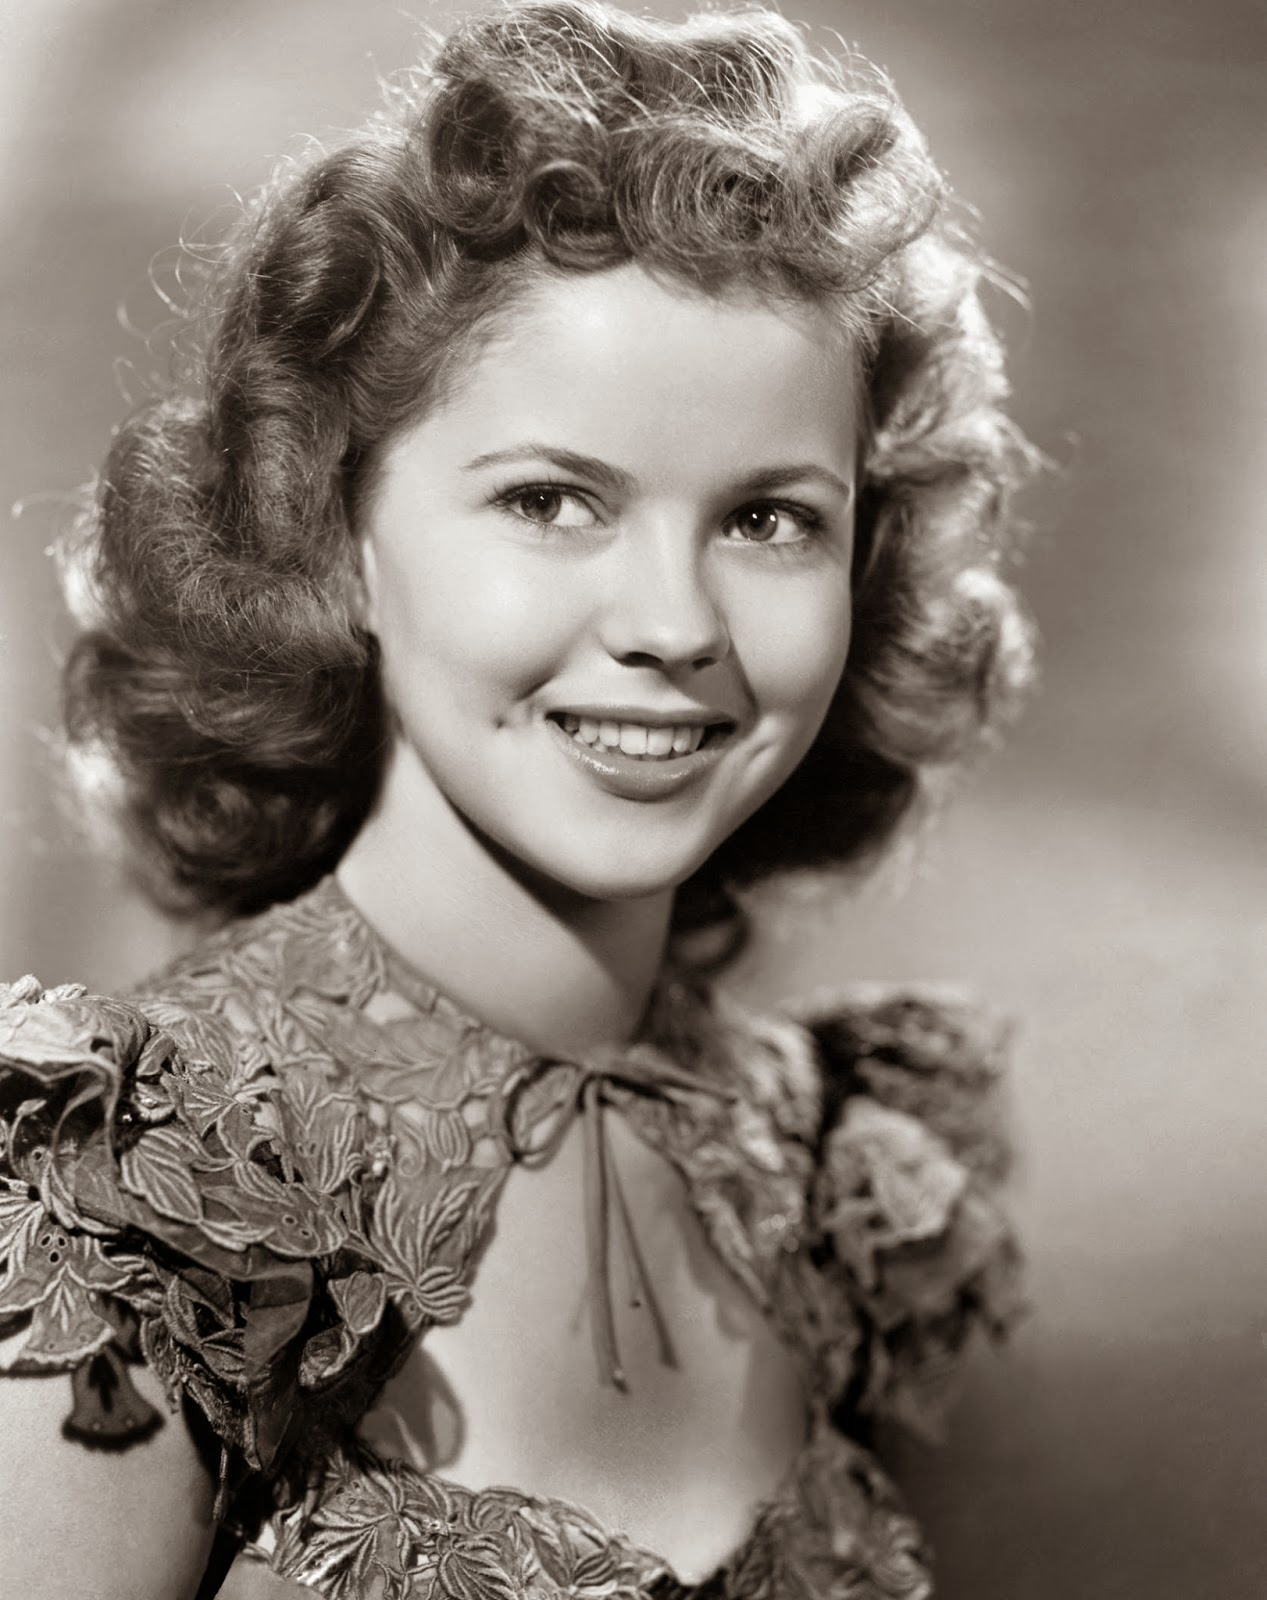 Birth of a Notion: A Salute to Shirley Temple